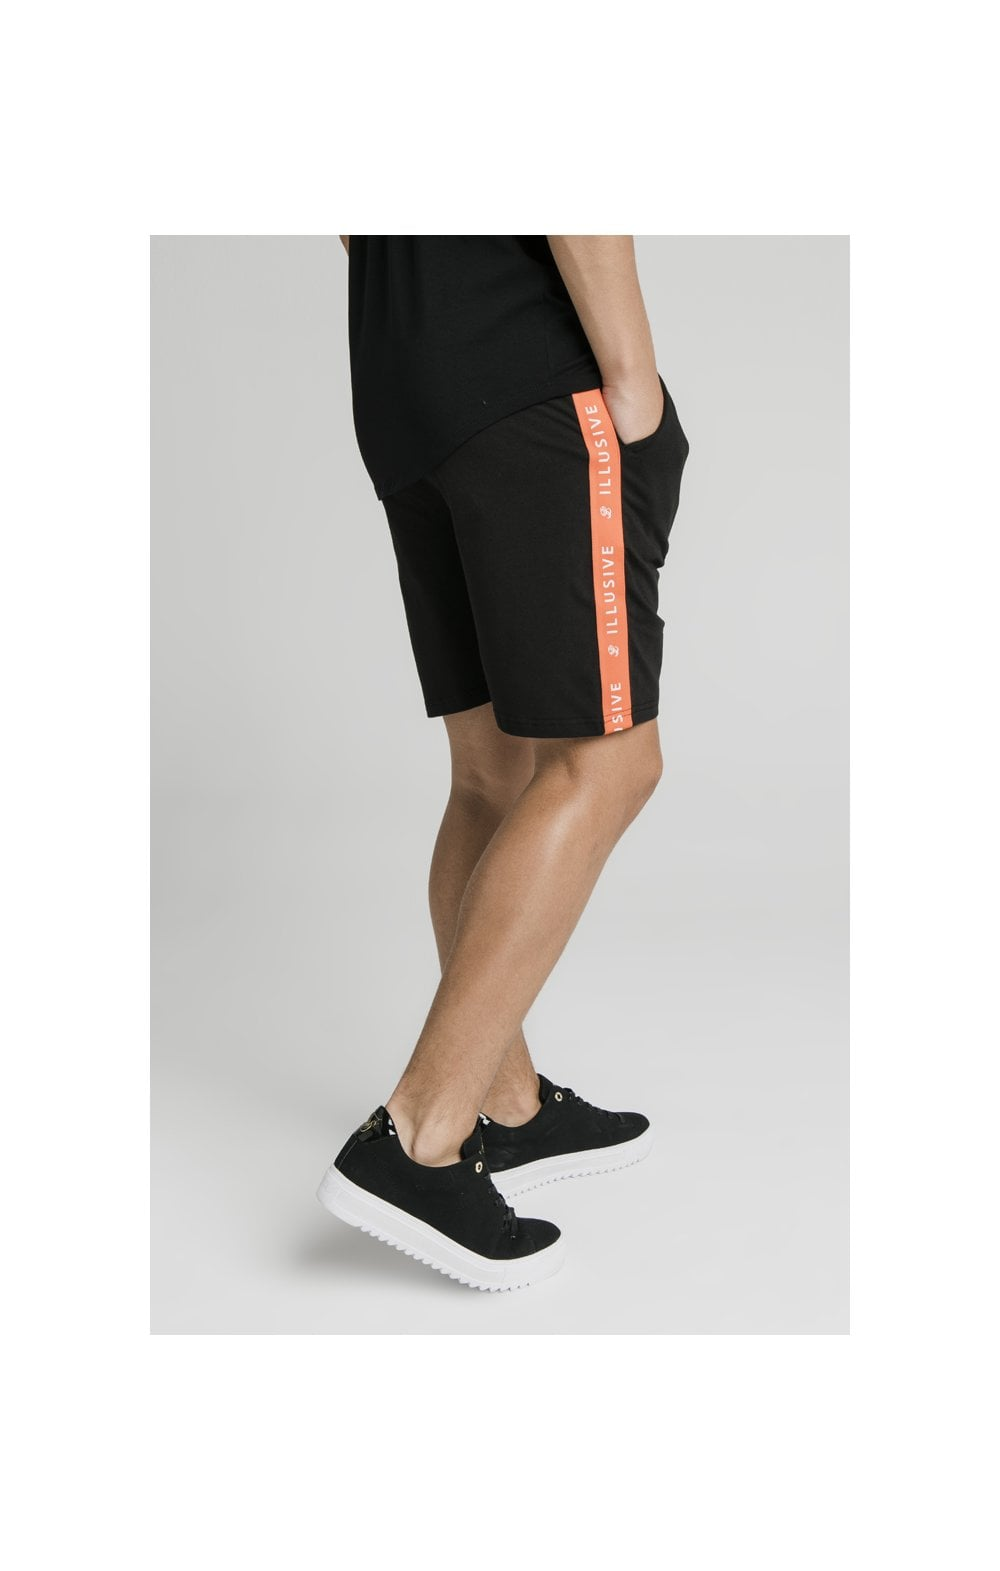 Illusive London Tape Shorts - Black (3)